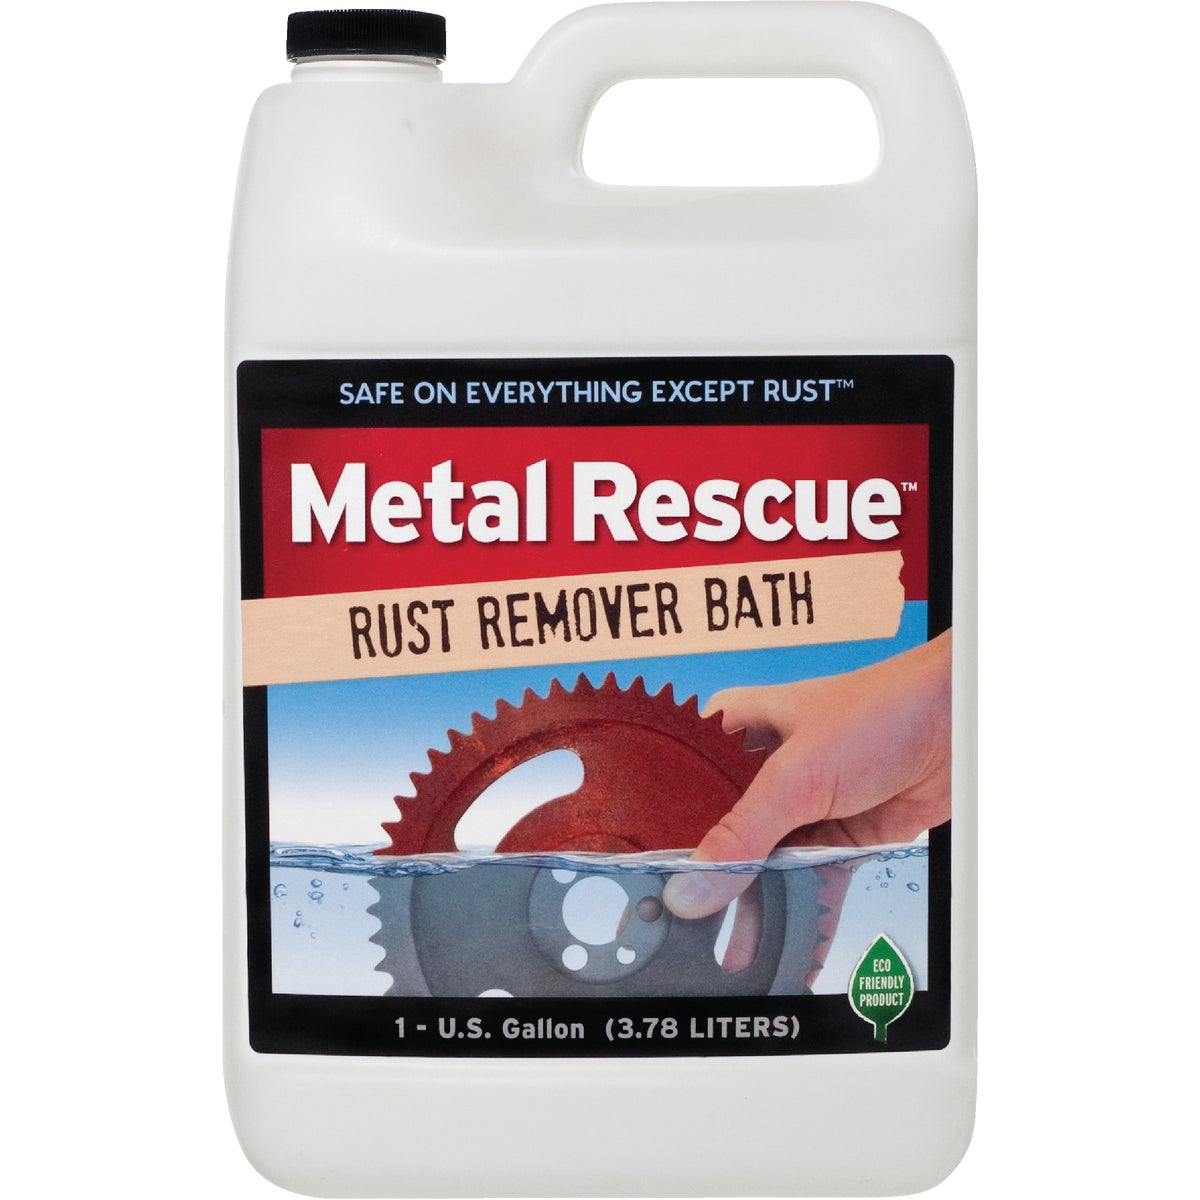 GALLON RUST REMOVER BATH - WH290487 by Workshop Hero